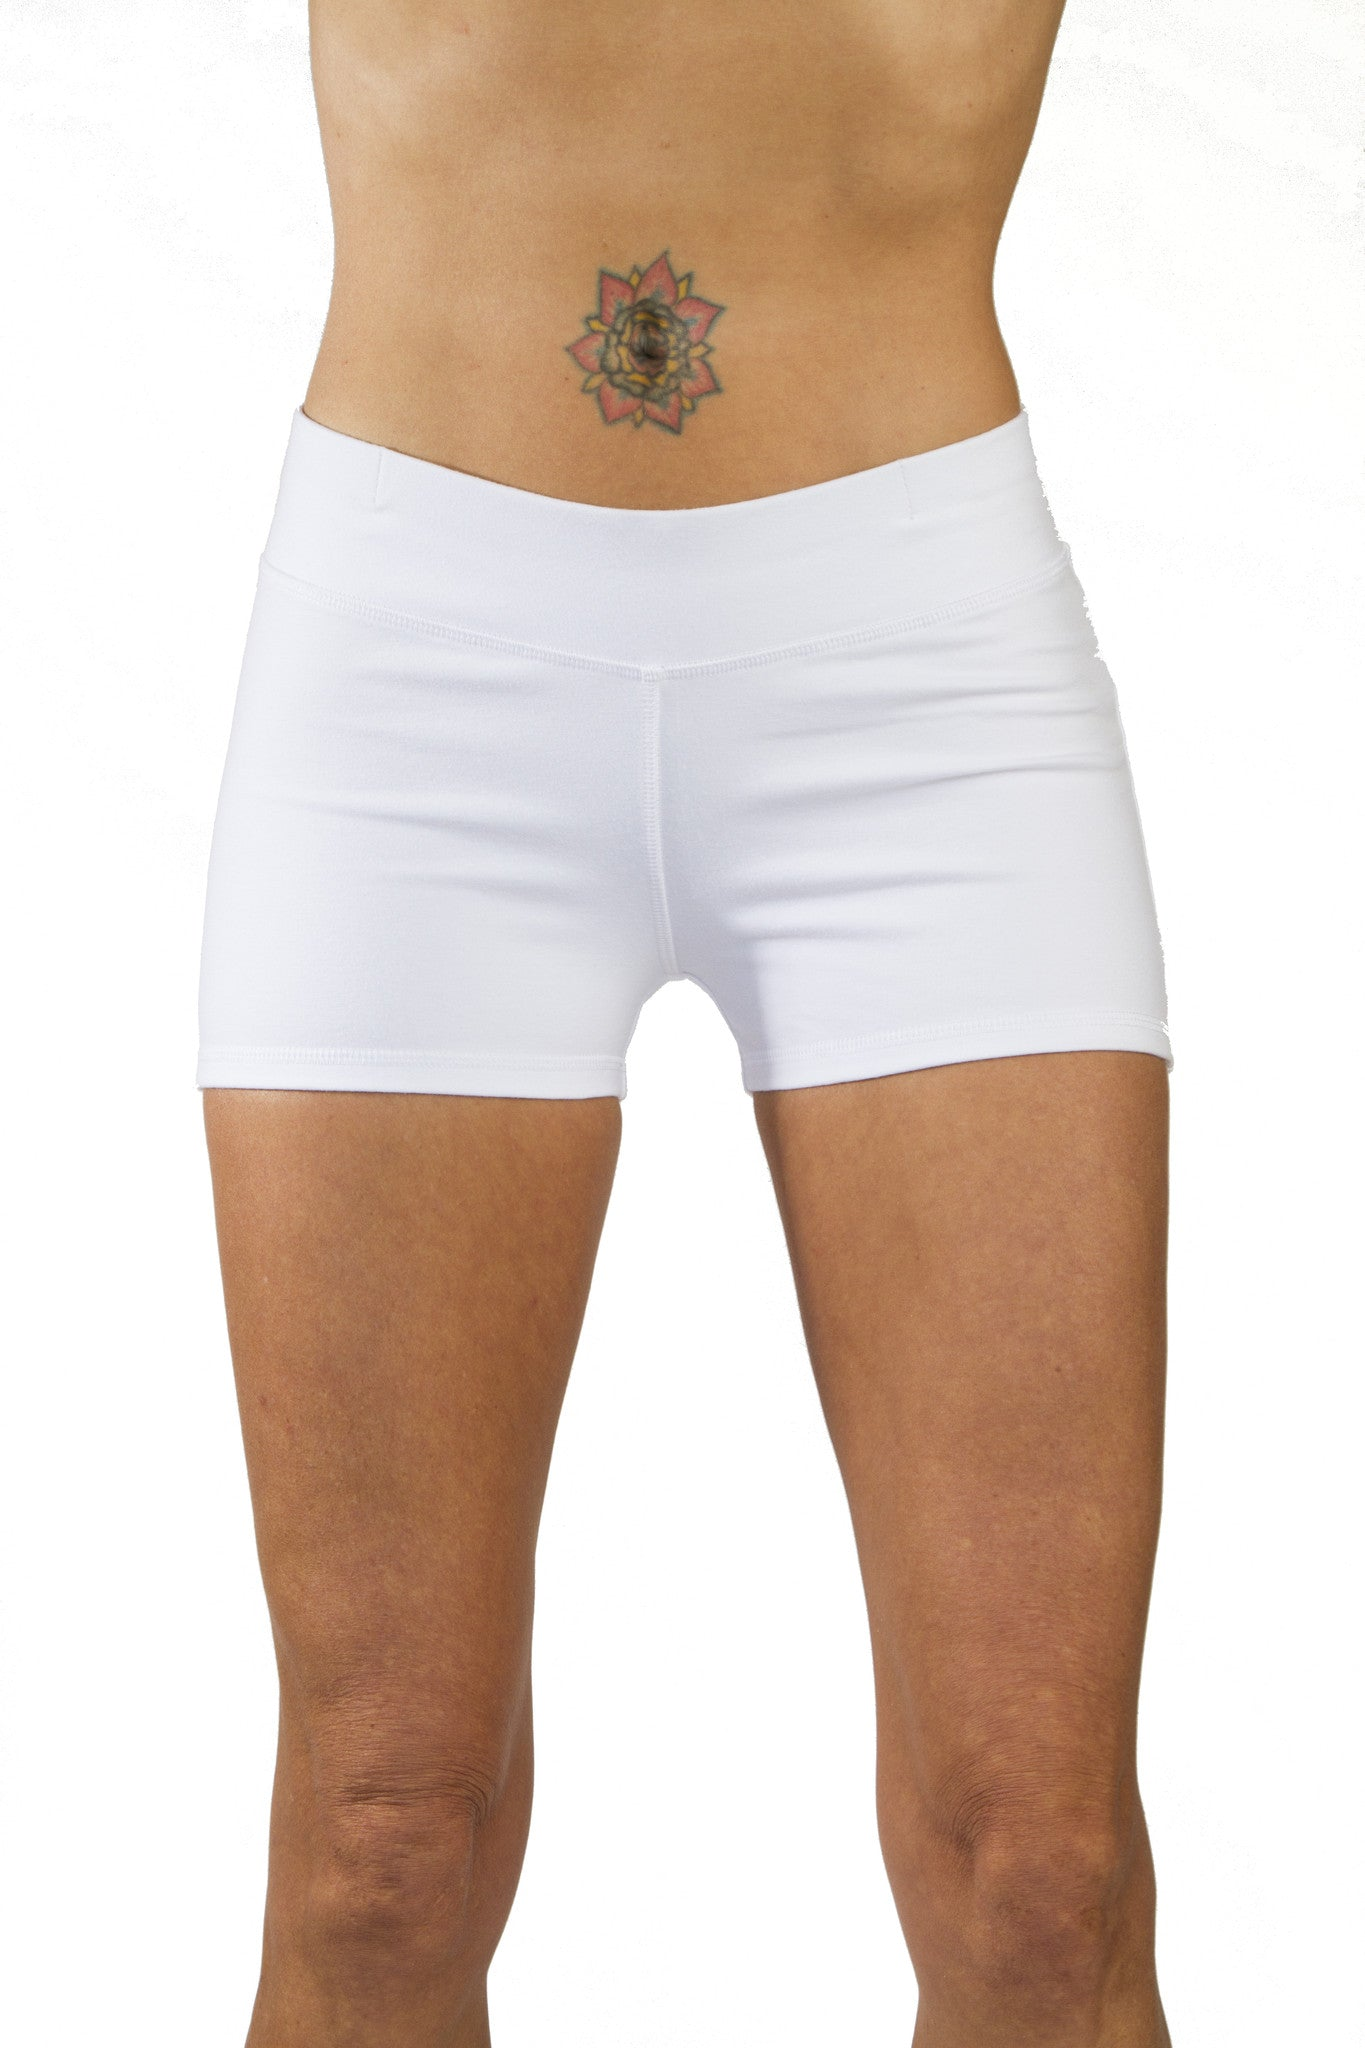 Yoga Hotpants - White - Beach Shorts - FUNKY SIMPLICITY